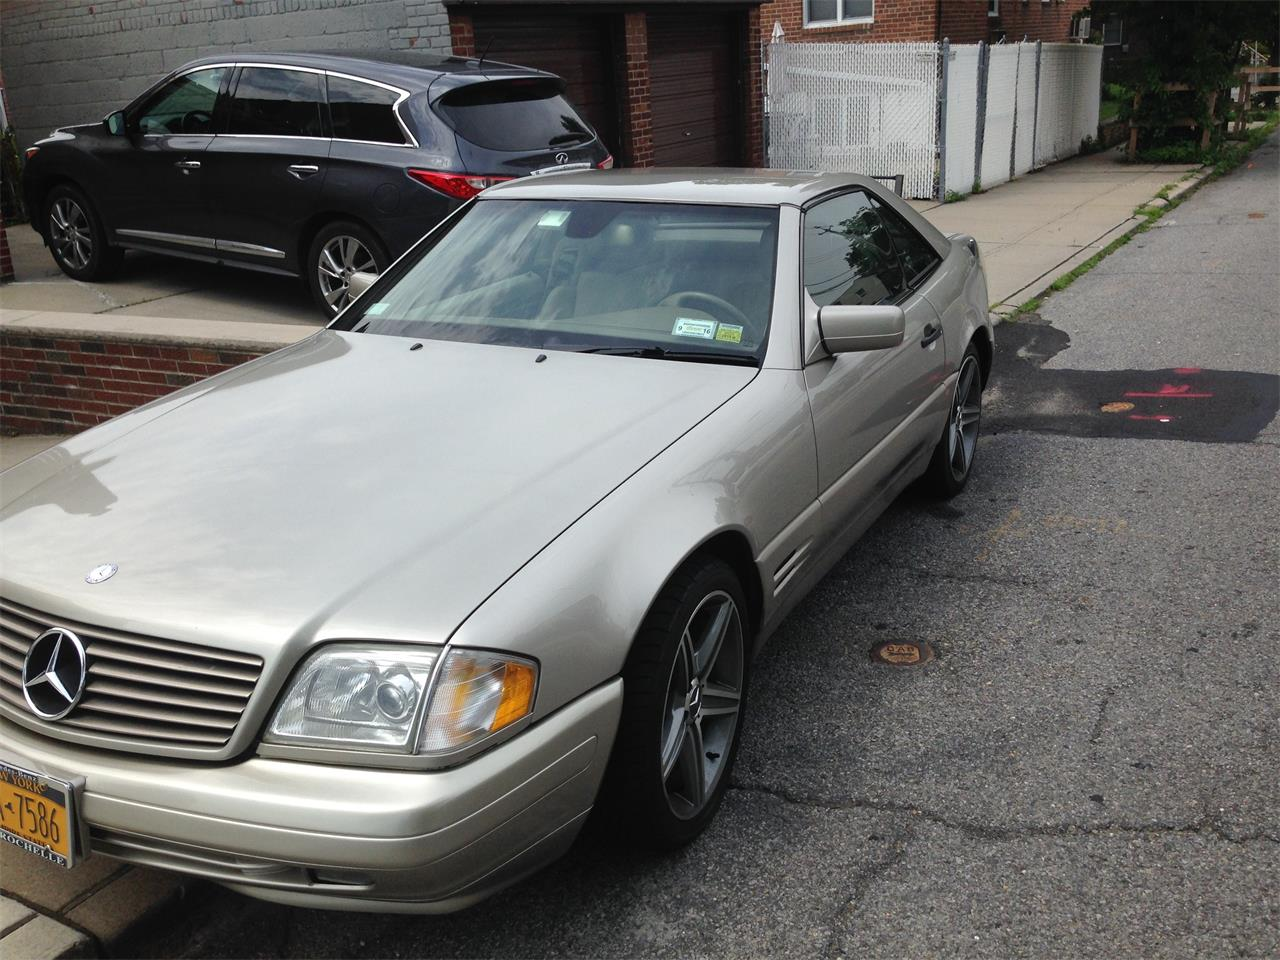 Large Picture of '98 Mercedes-Benz SL500 - $7,900.00 - EYIB